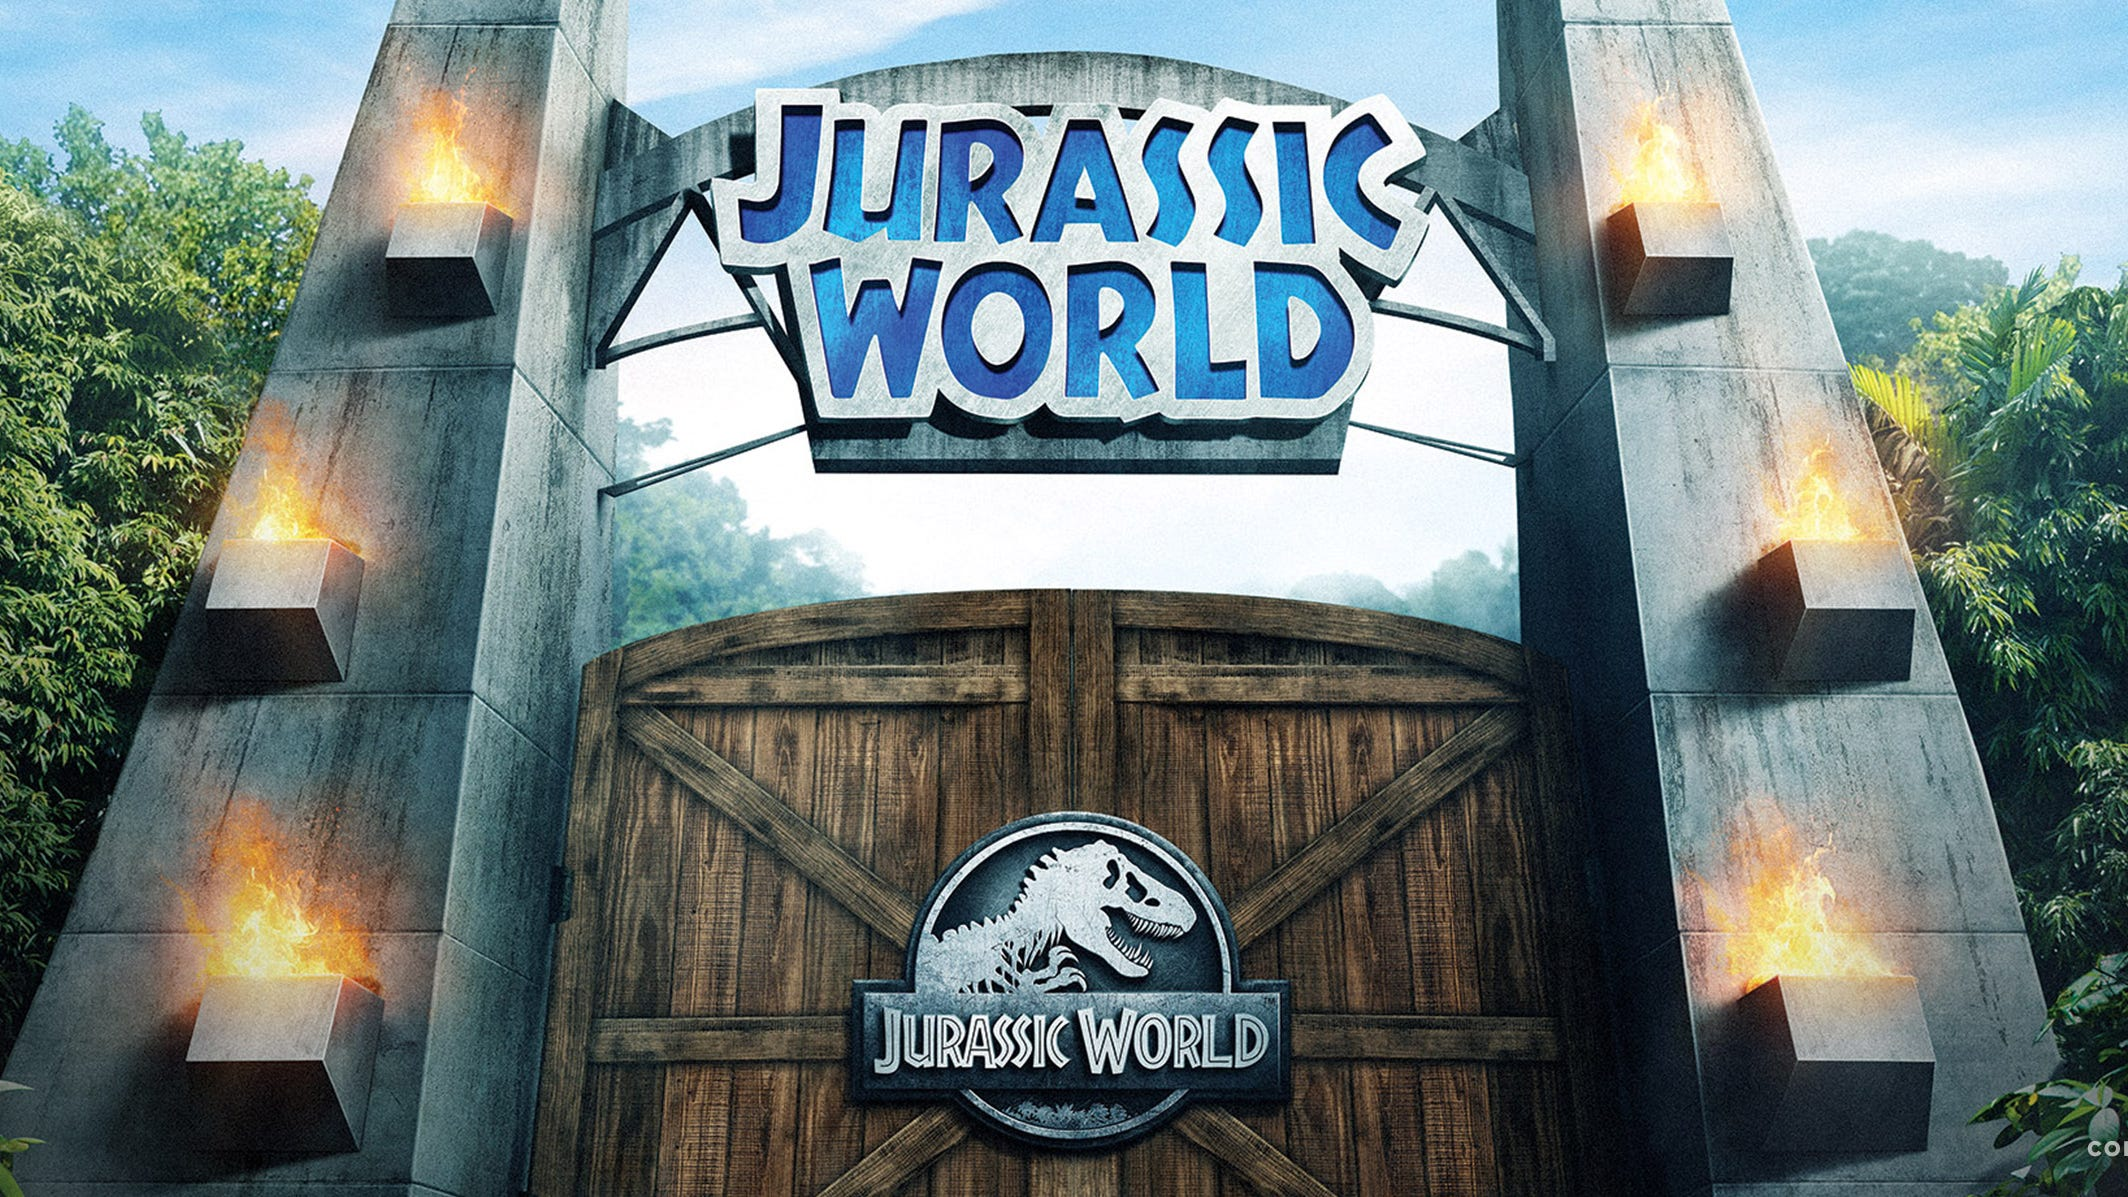 """The Jurassic Park ride has been terrorizing visitors with its fearsome dinosaurs and splashdown finale for years. With the """"Jurassic World"""" reboot amassing T. rex-sized box office receipts, Universal Studios Hollywood is getting its water ride spiffed up for the next generation of genetically engineered, prehistoric creatures."""